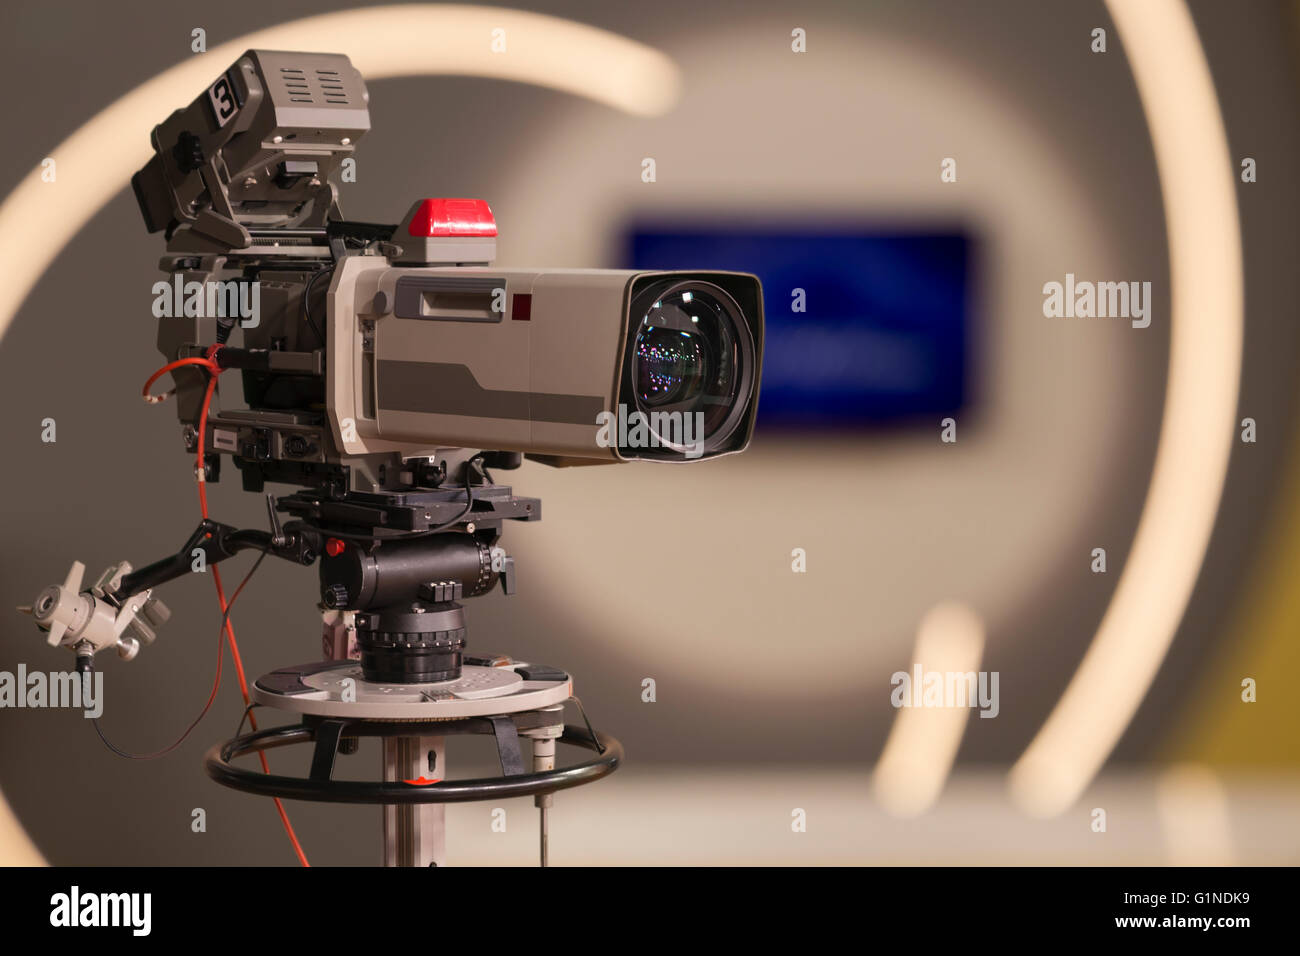 a professional television camera - Stock Image